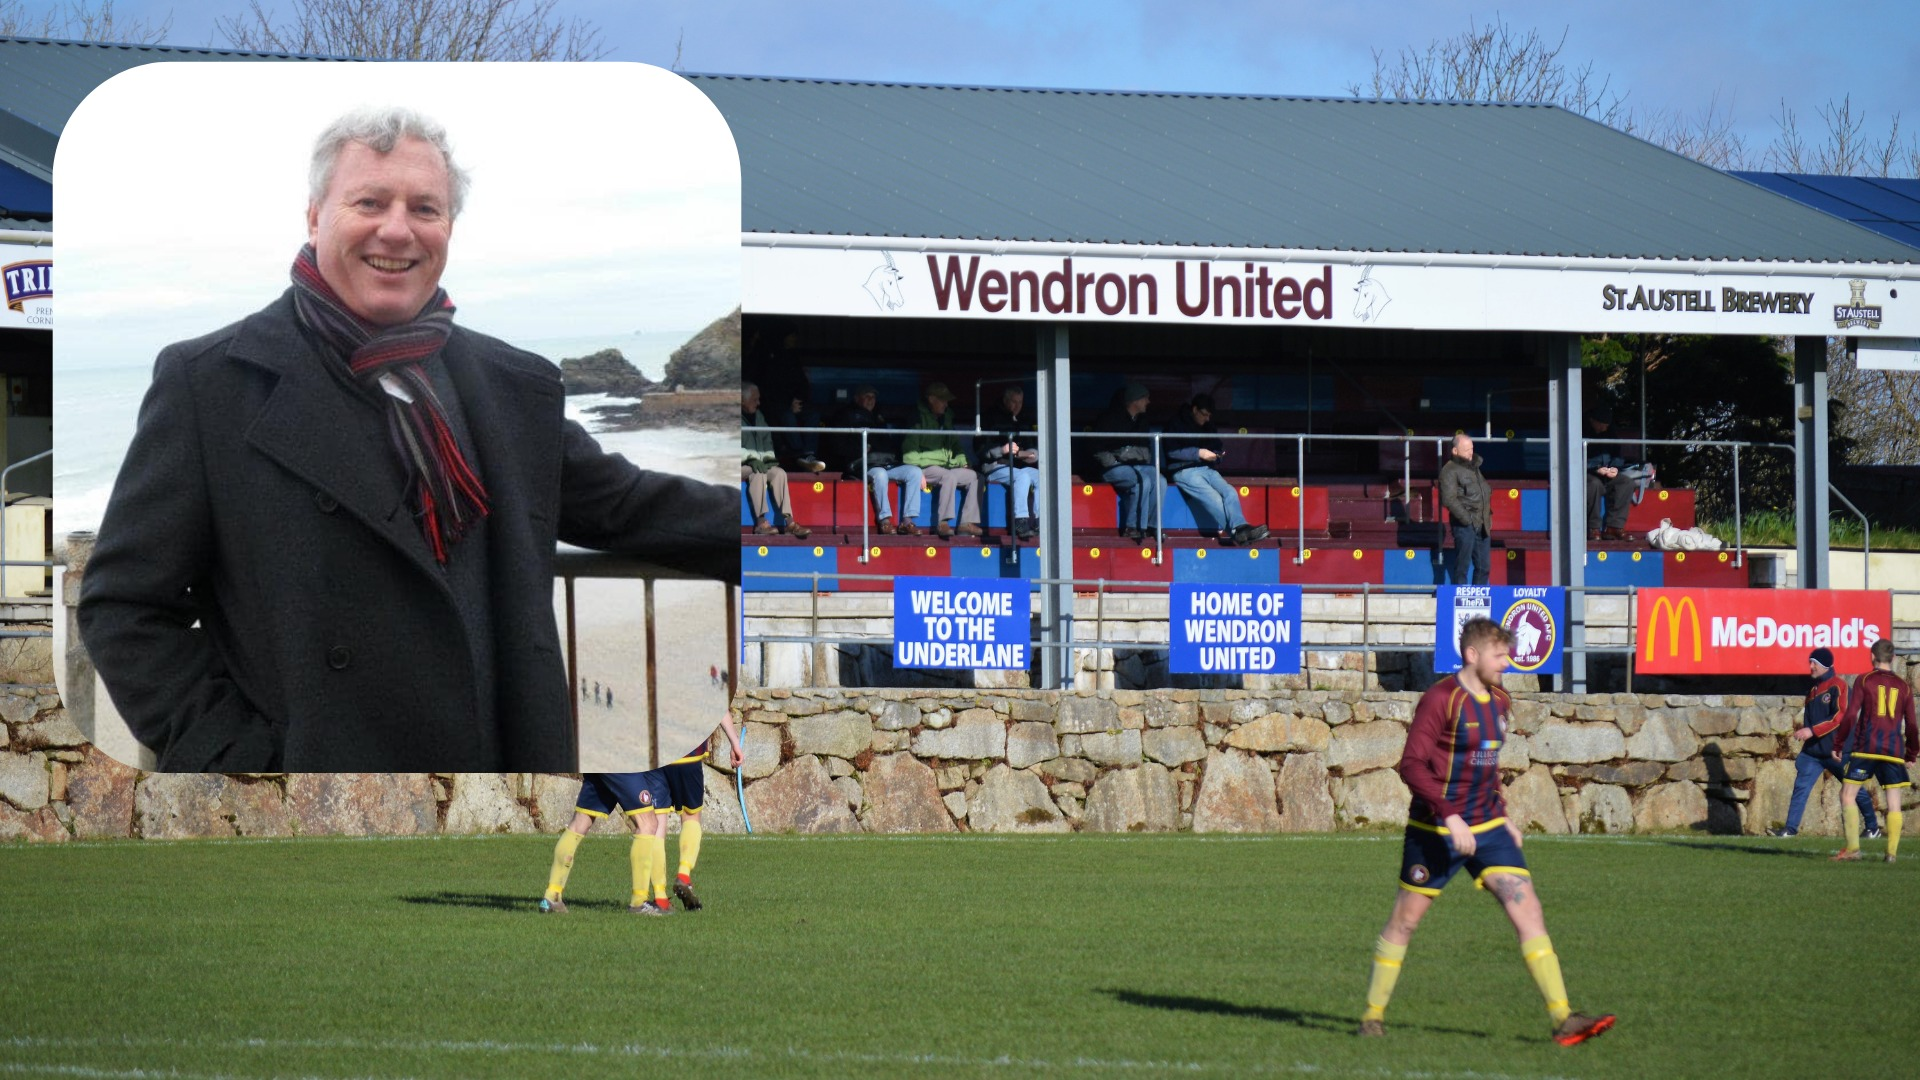 Saturday's match will be Wendron United's first since the death of club chairman Kevin Williamson